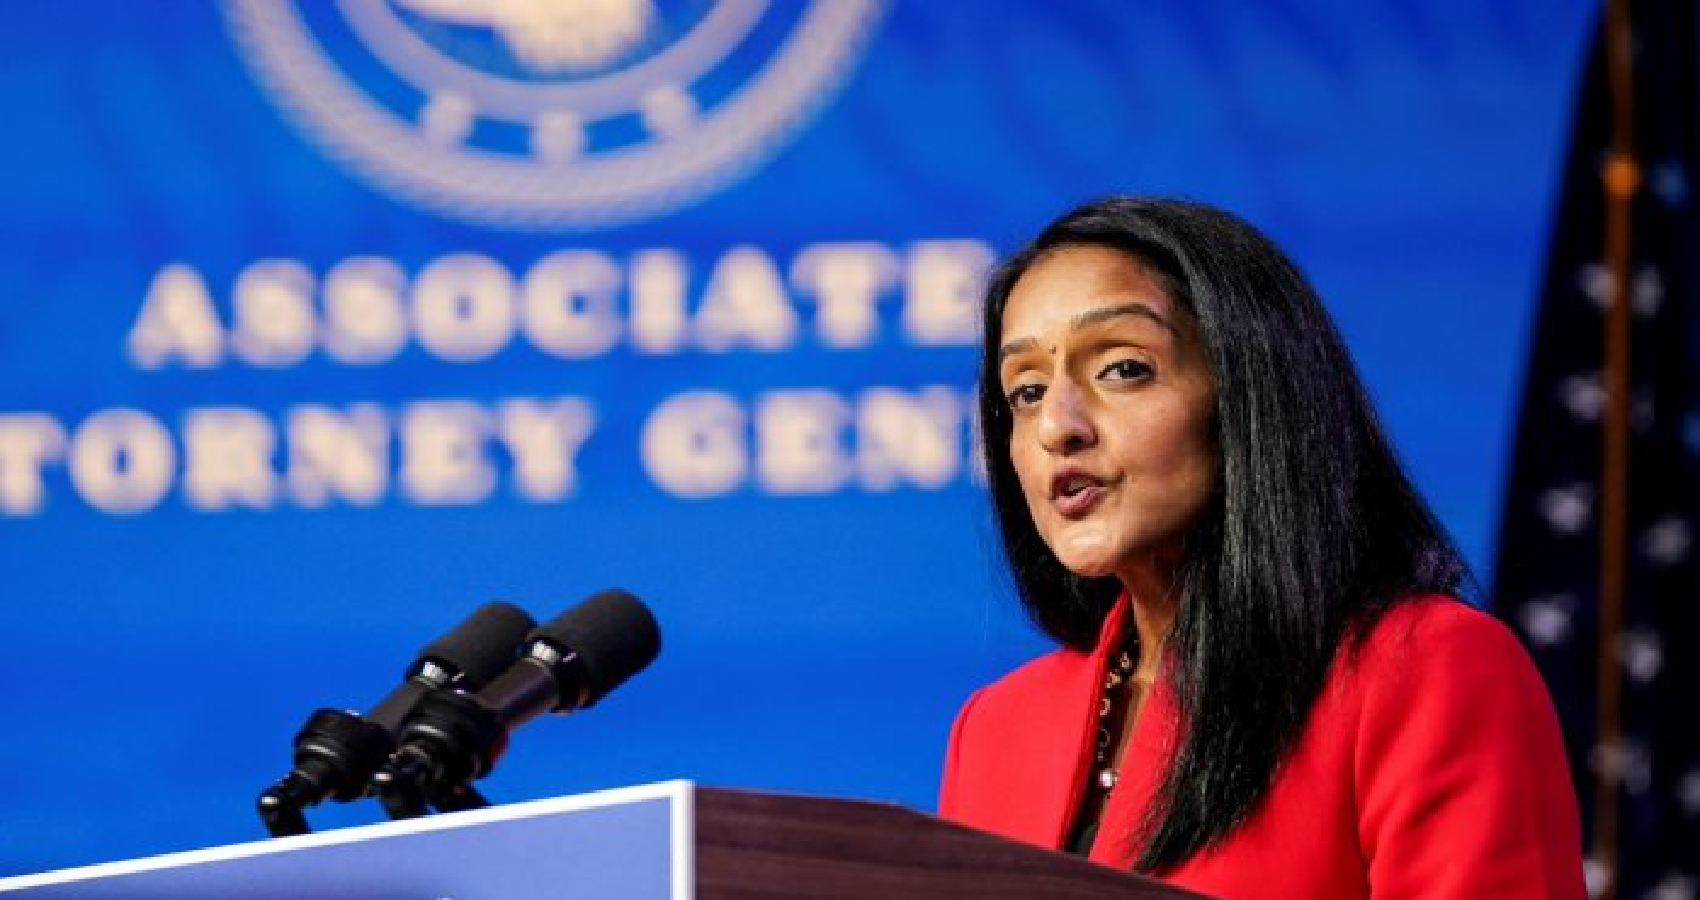 Vanita Gupta Confirmed as Associate Attorney General, the Third-Highest Position at the US Department of Justice